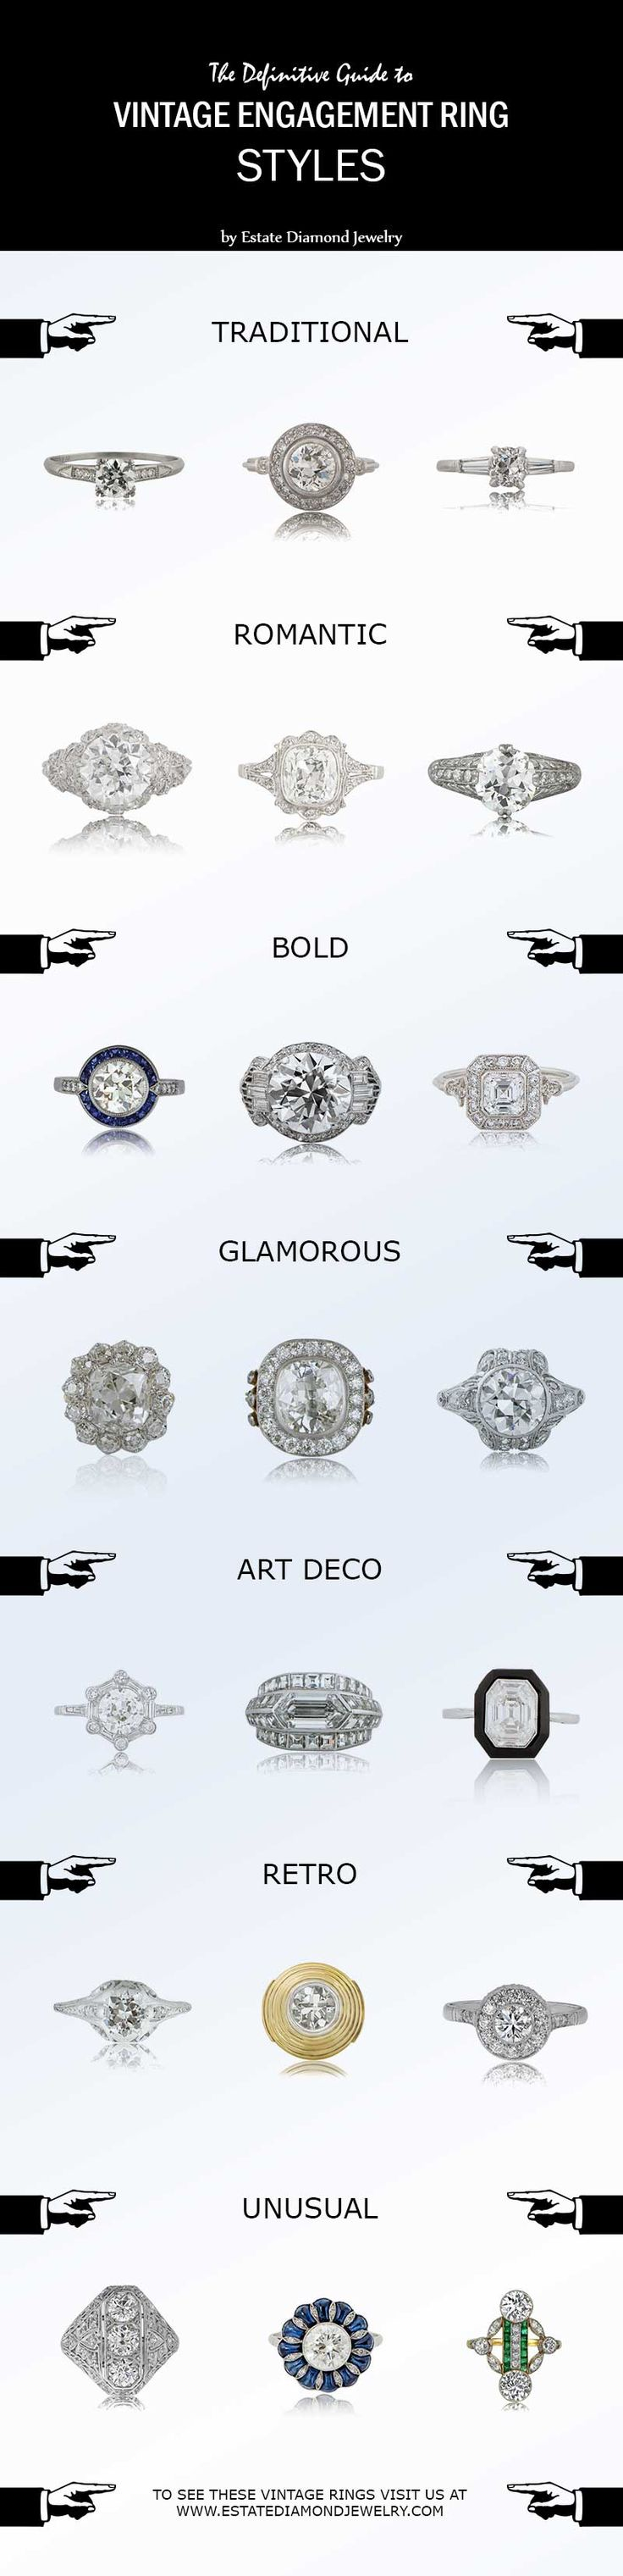 The definitive guide for vintage engagement ring styles.